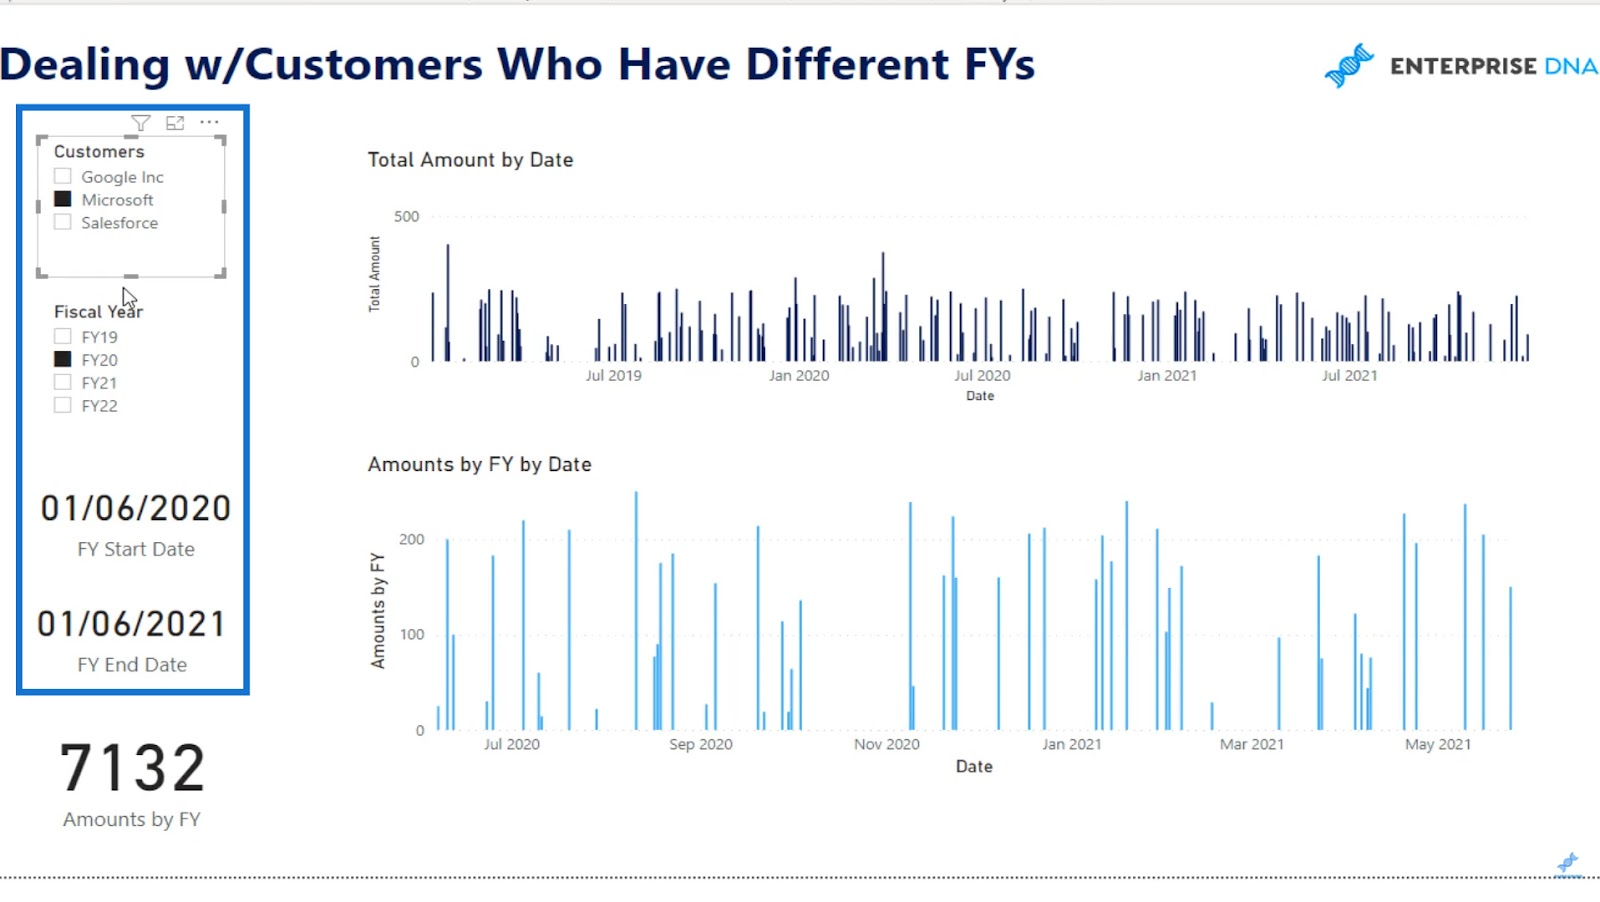 Customer and financial year slicers